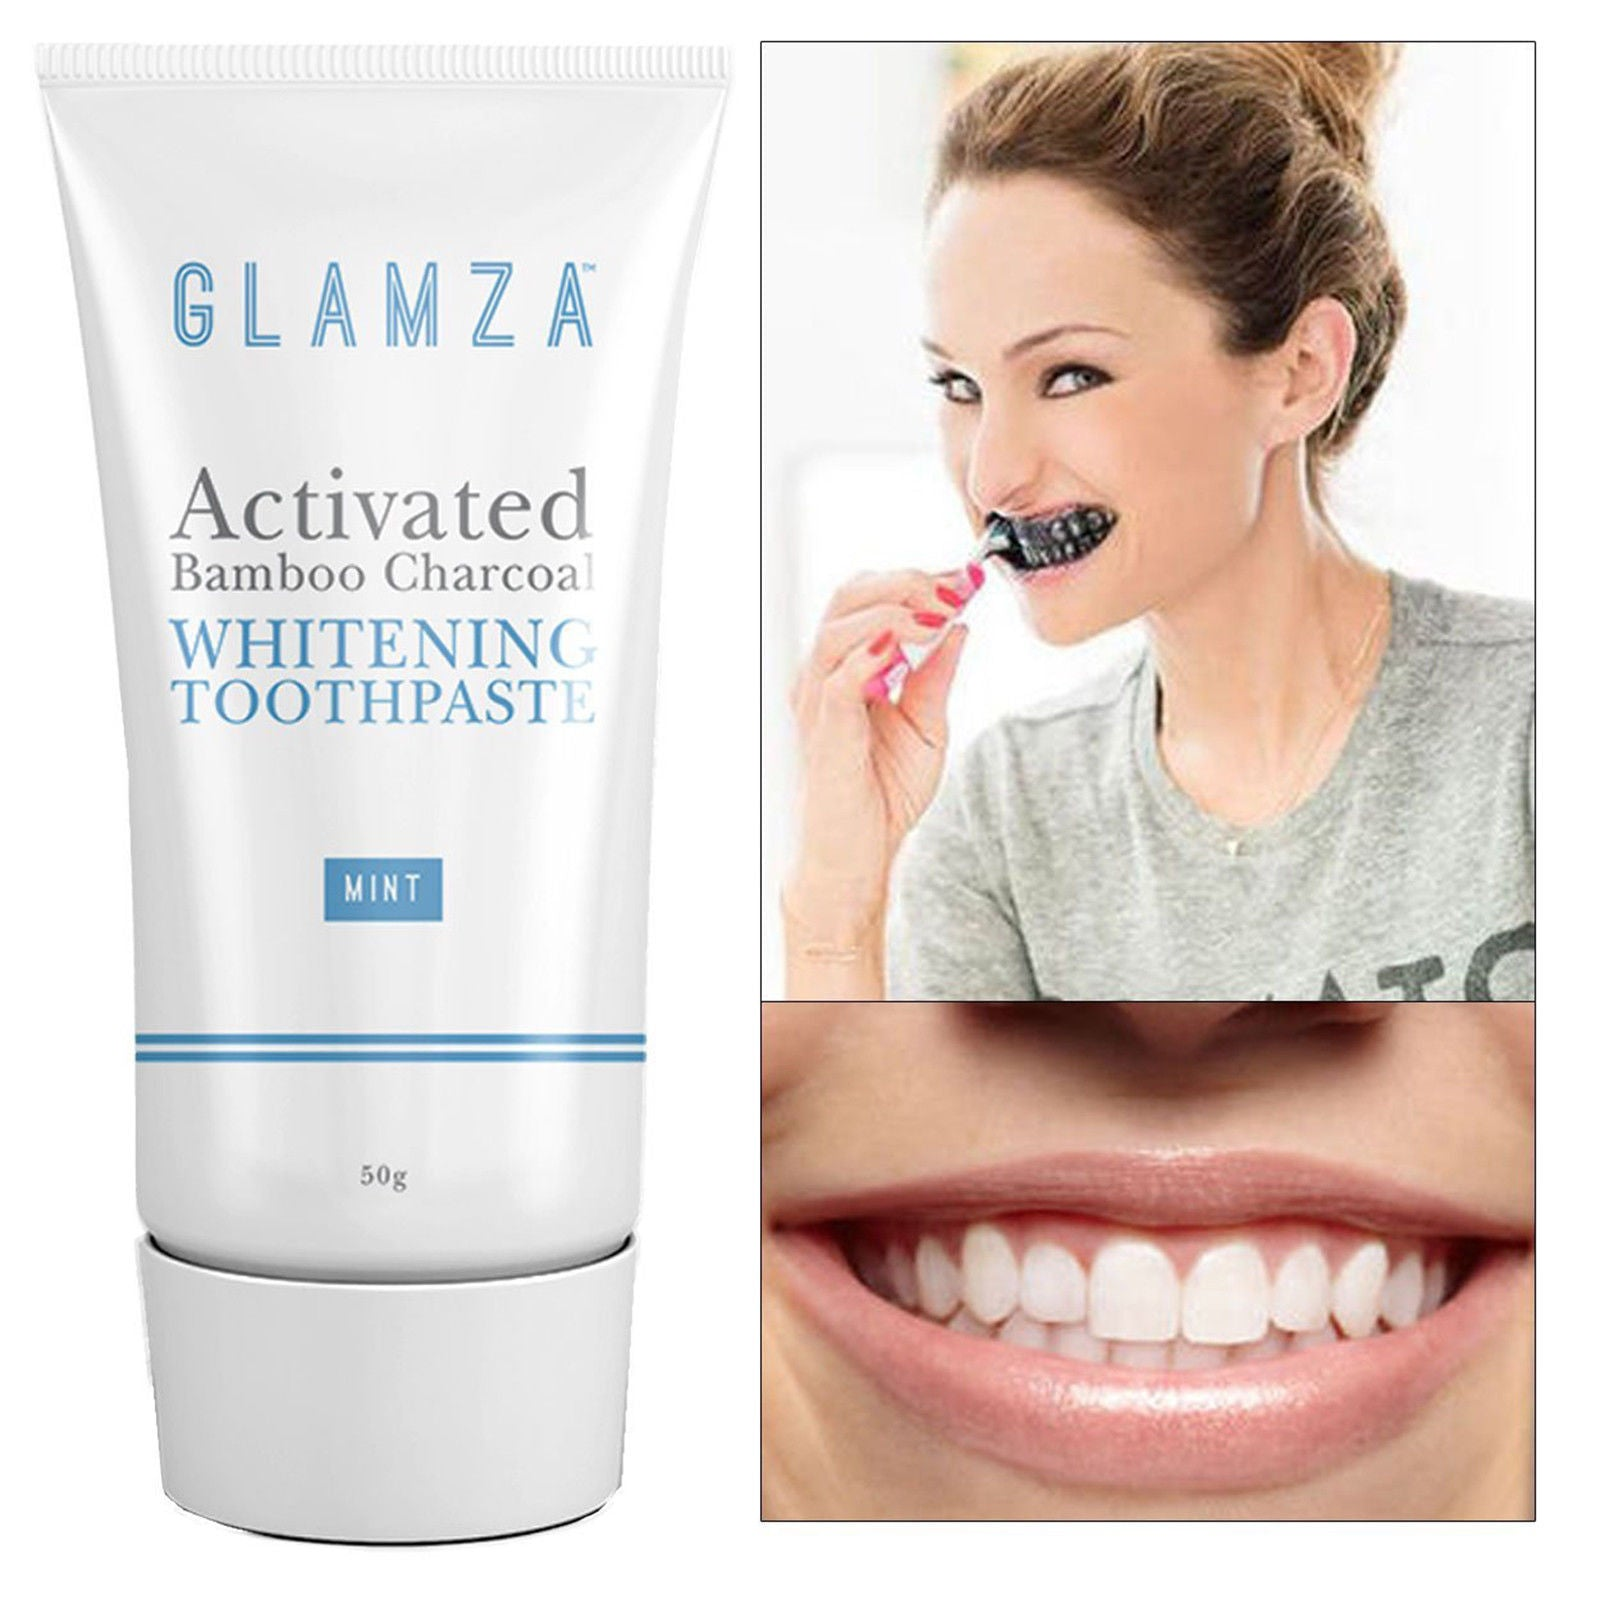 Glamza Activated Charcoal Toothpaste - Mint by  Glamza Beauty